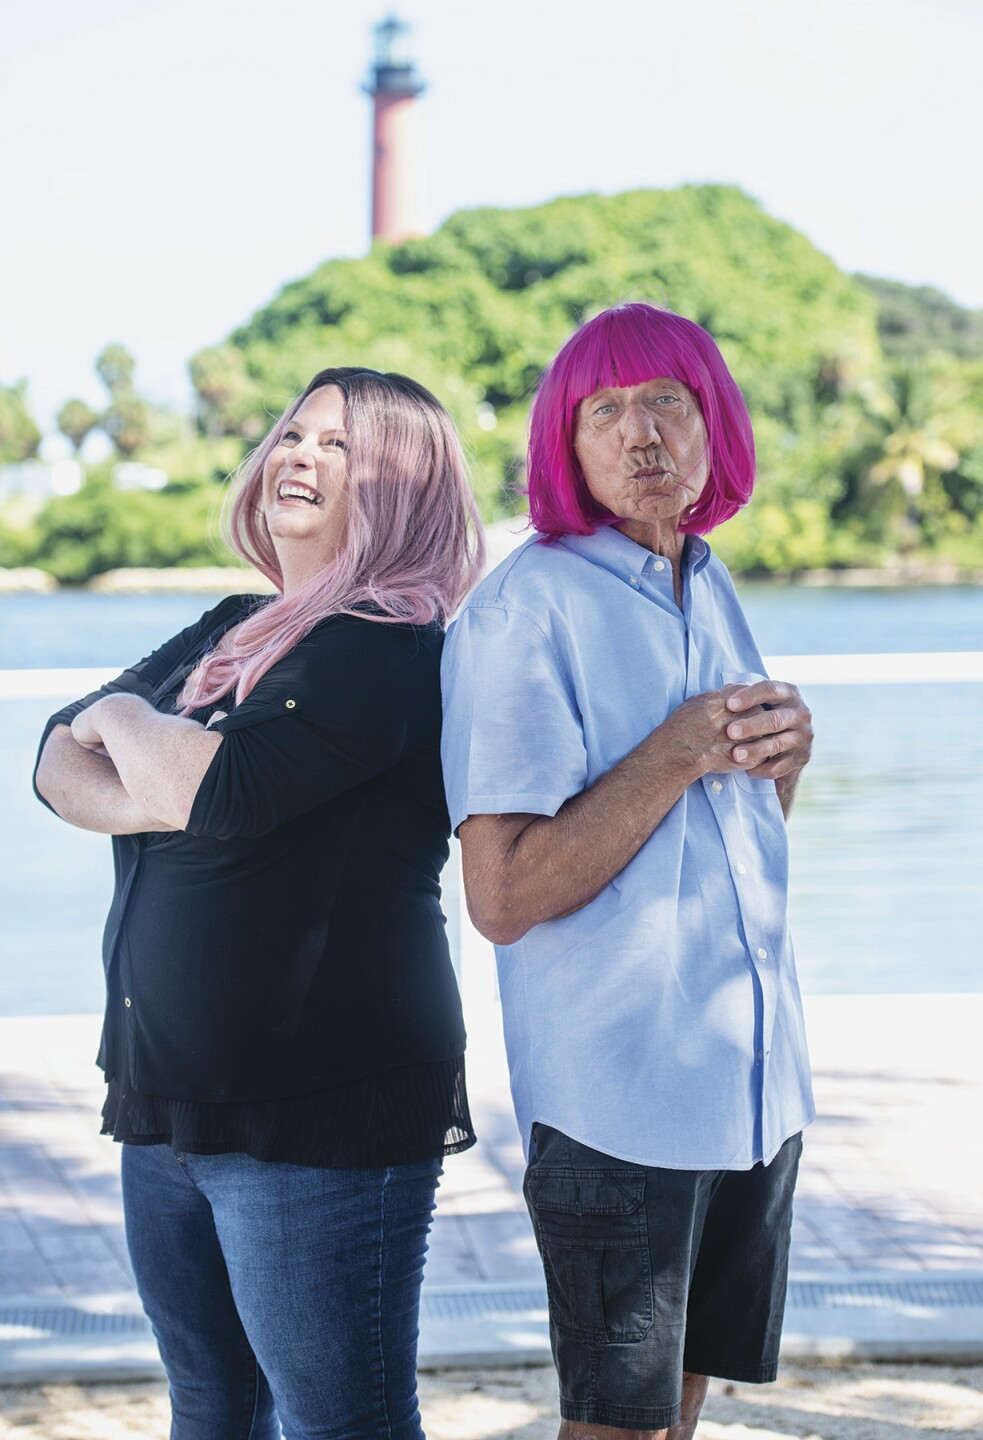 Liz Soulen and Joe Namath in pink wigs for Breast Cancer Awareness Month